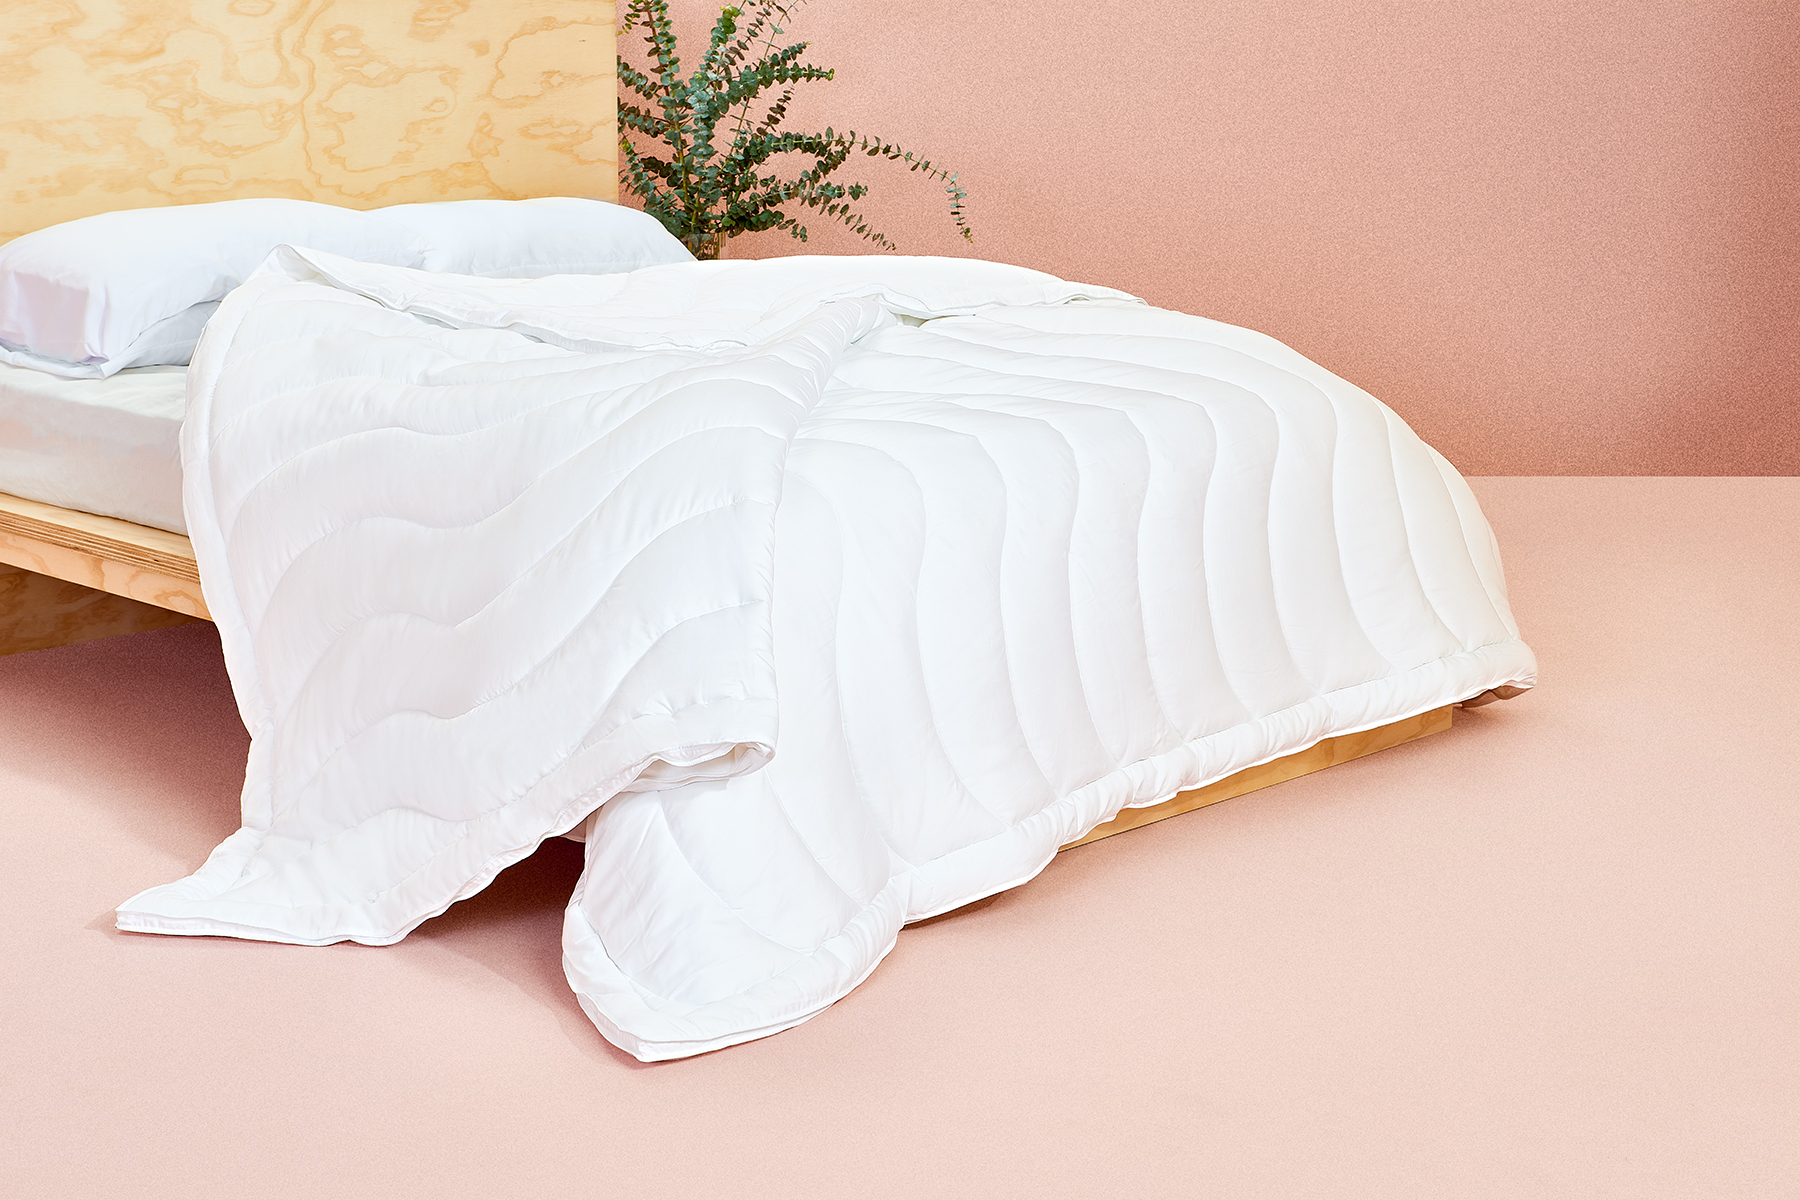 This Cult-Favorite Bedding Brand Released a Eucalyptus Cooling Comforter That Will Help You Sleep Better